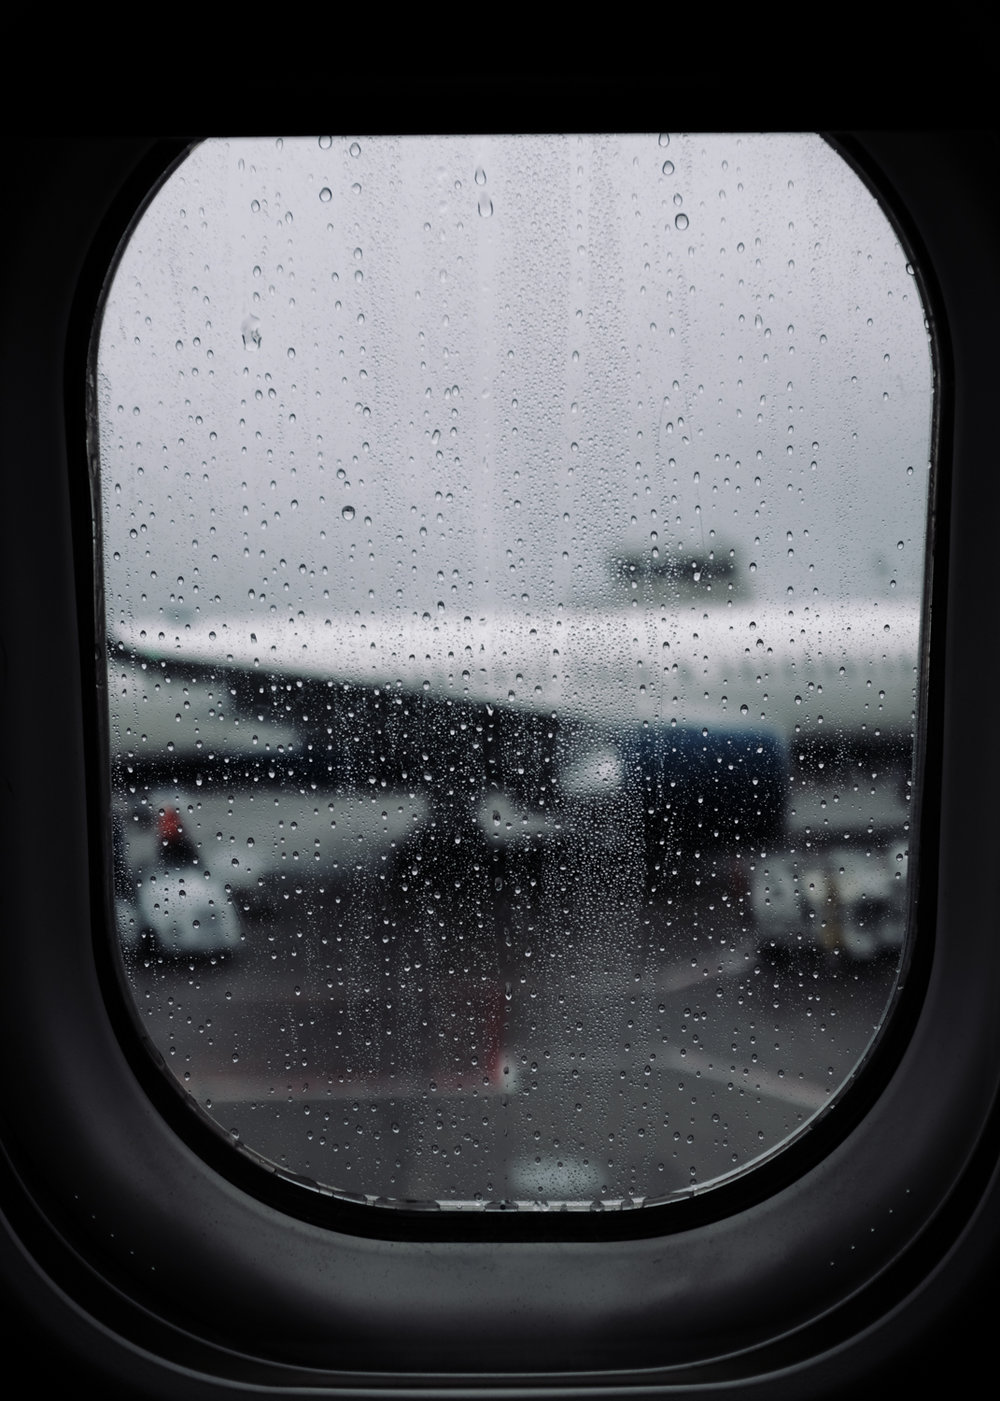 Rainy Runway, Hartsfield-Jackson Atlanta International Airport